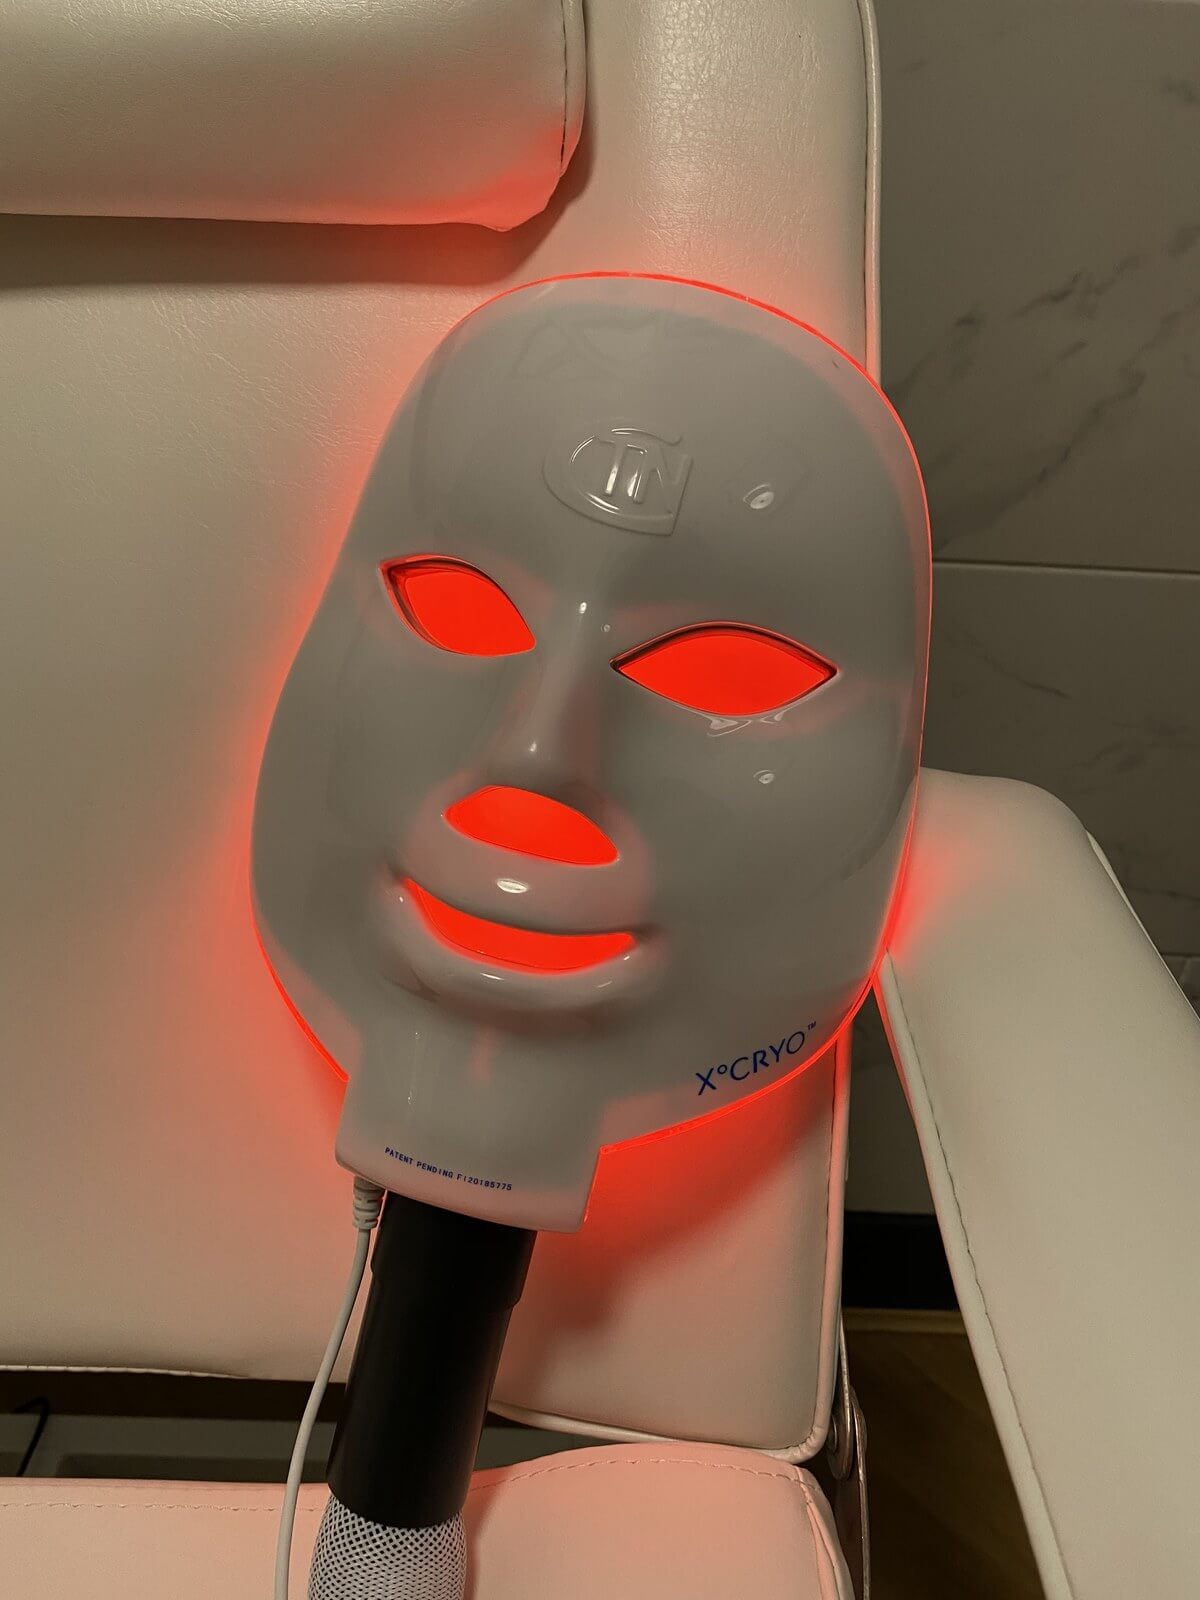 Red LED Light - IV Vitamin & Therapy Lounge